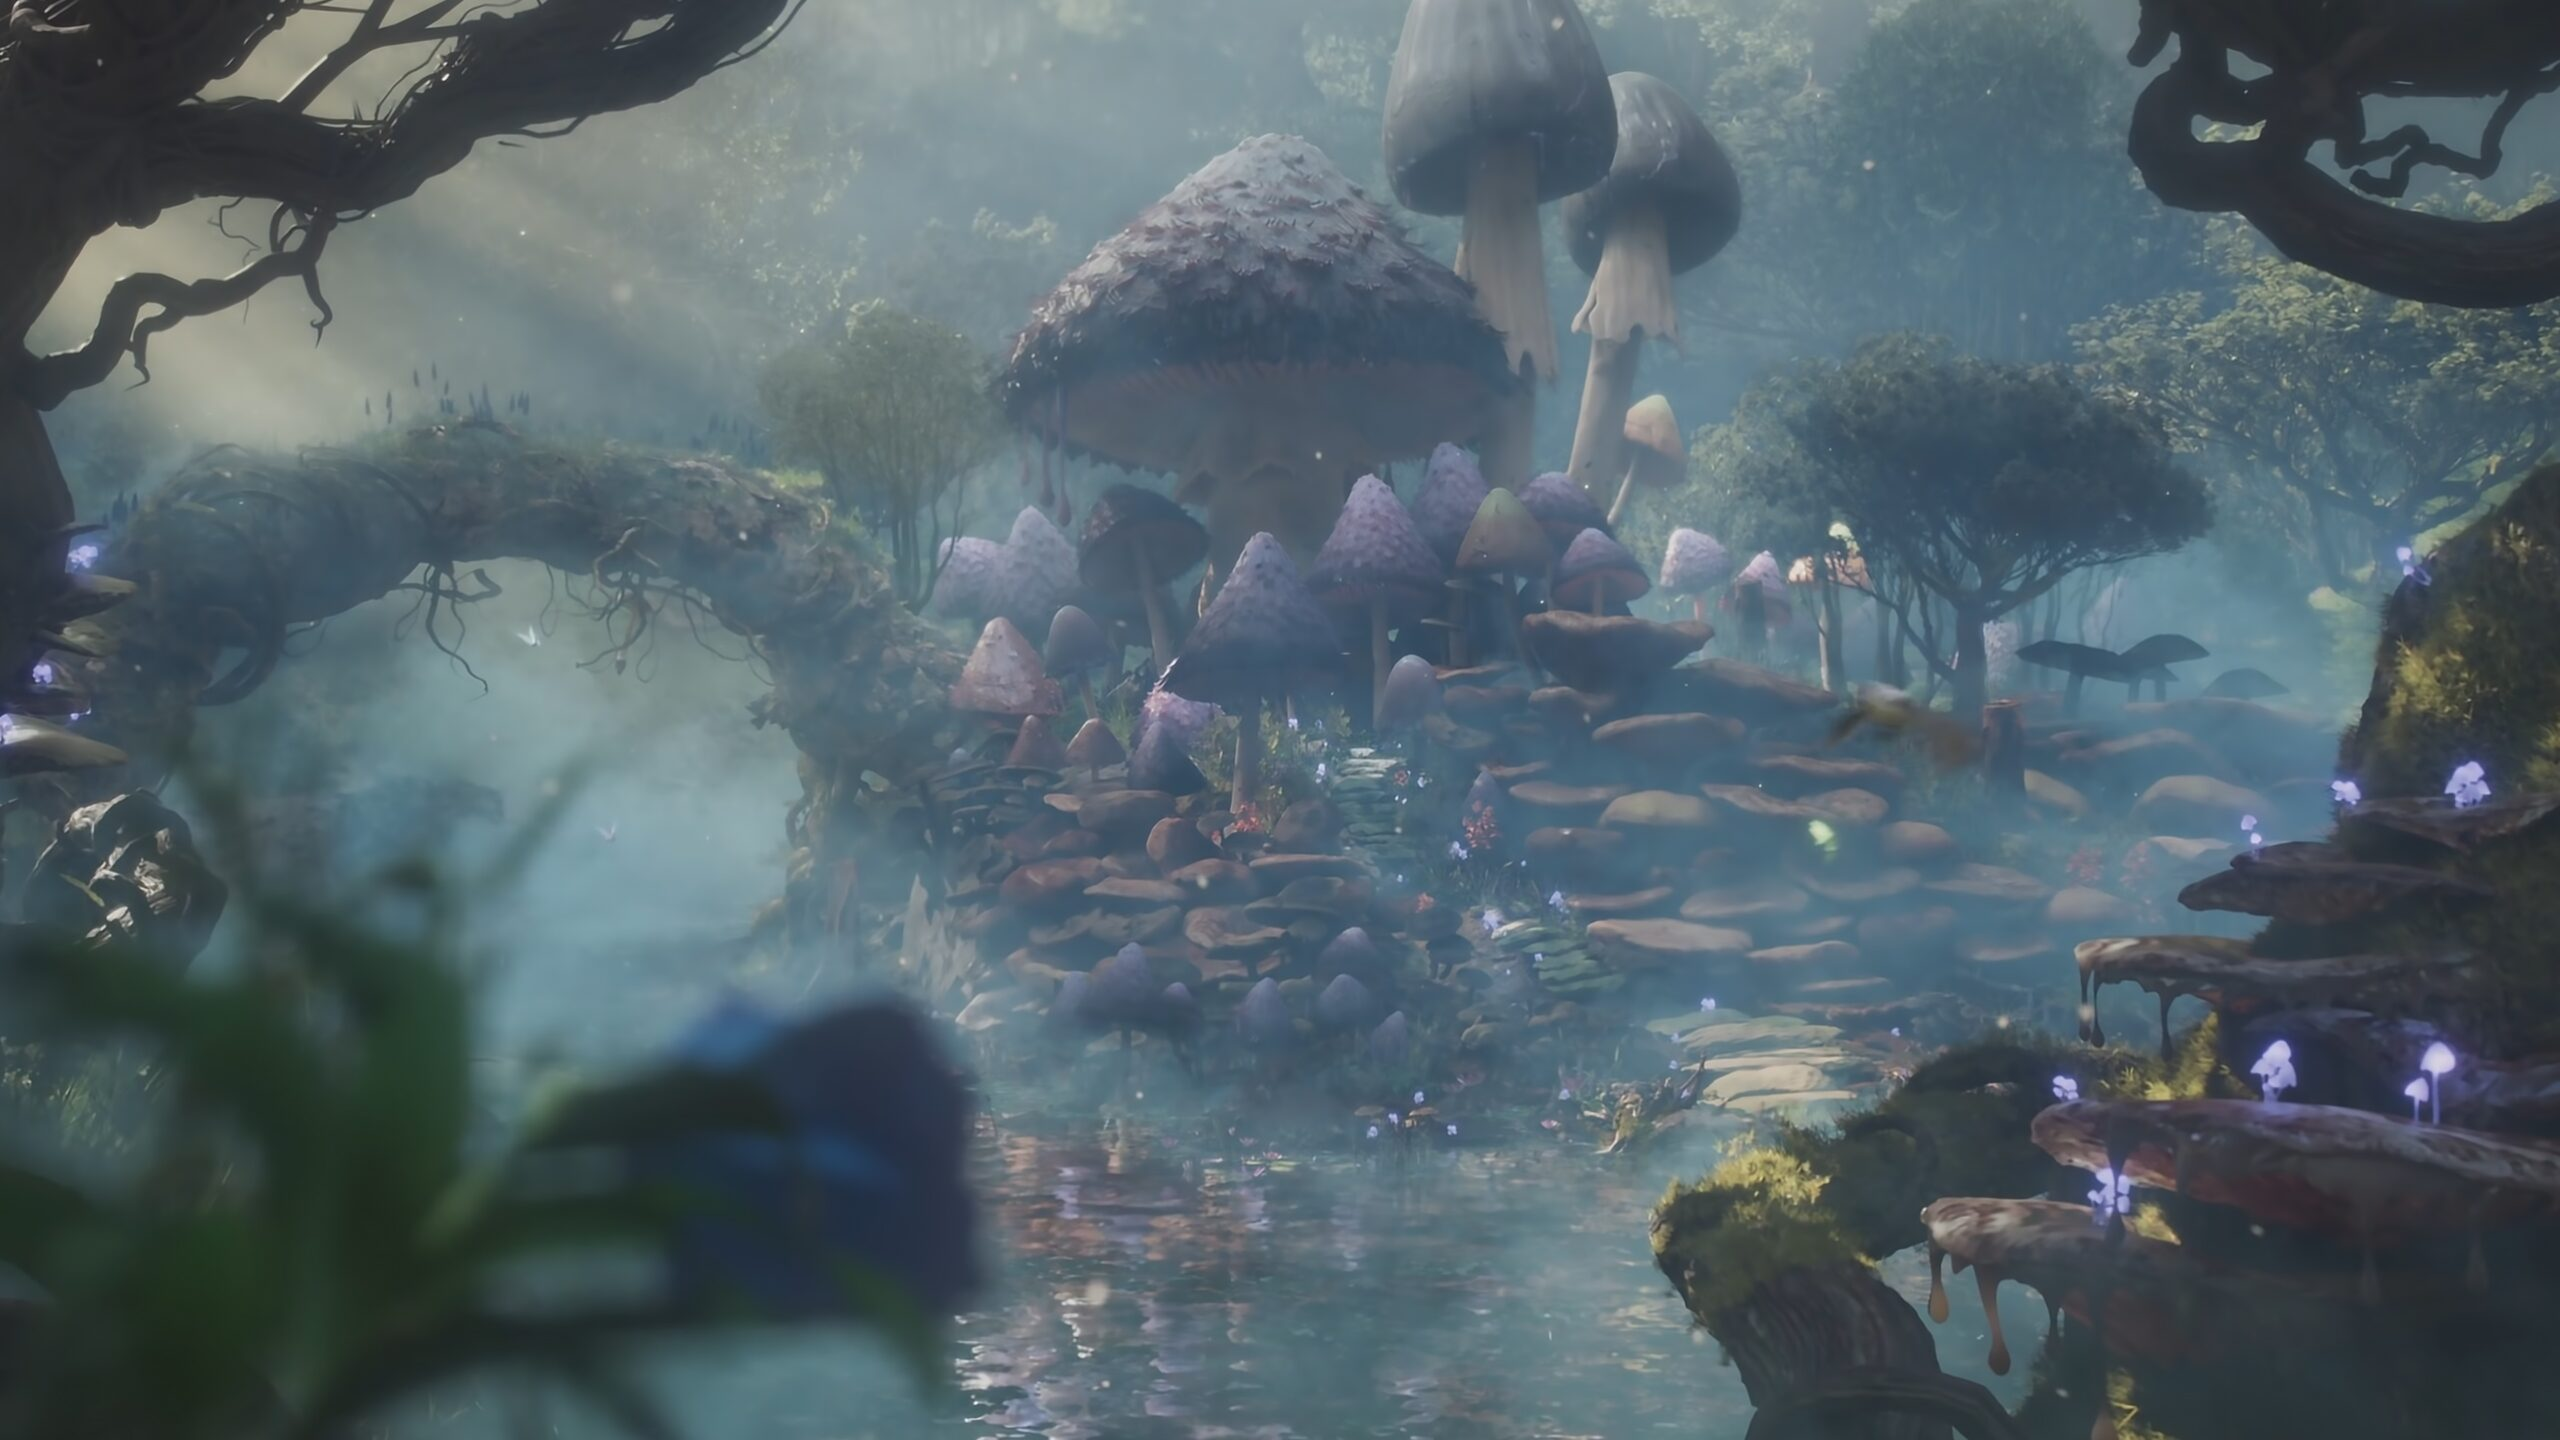 Playground Games Trailer still of magical forest